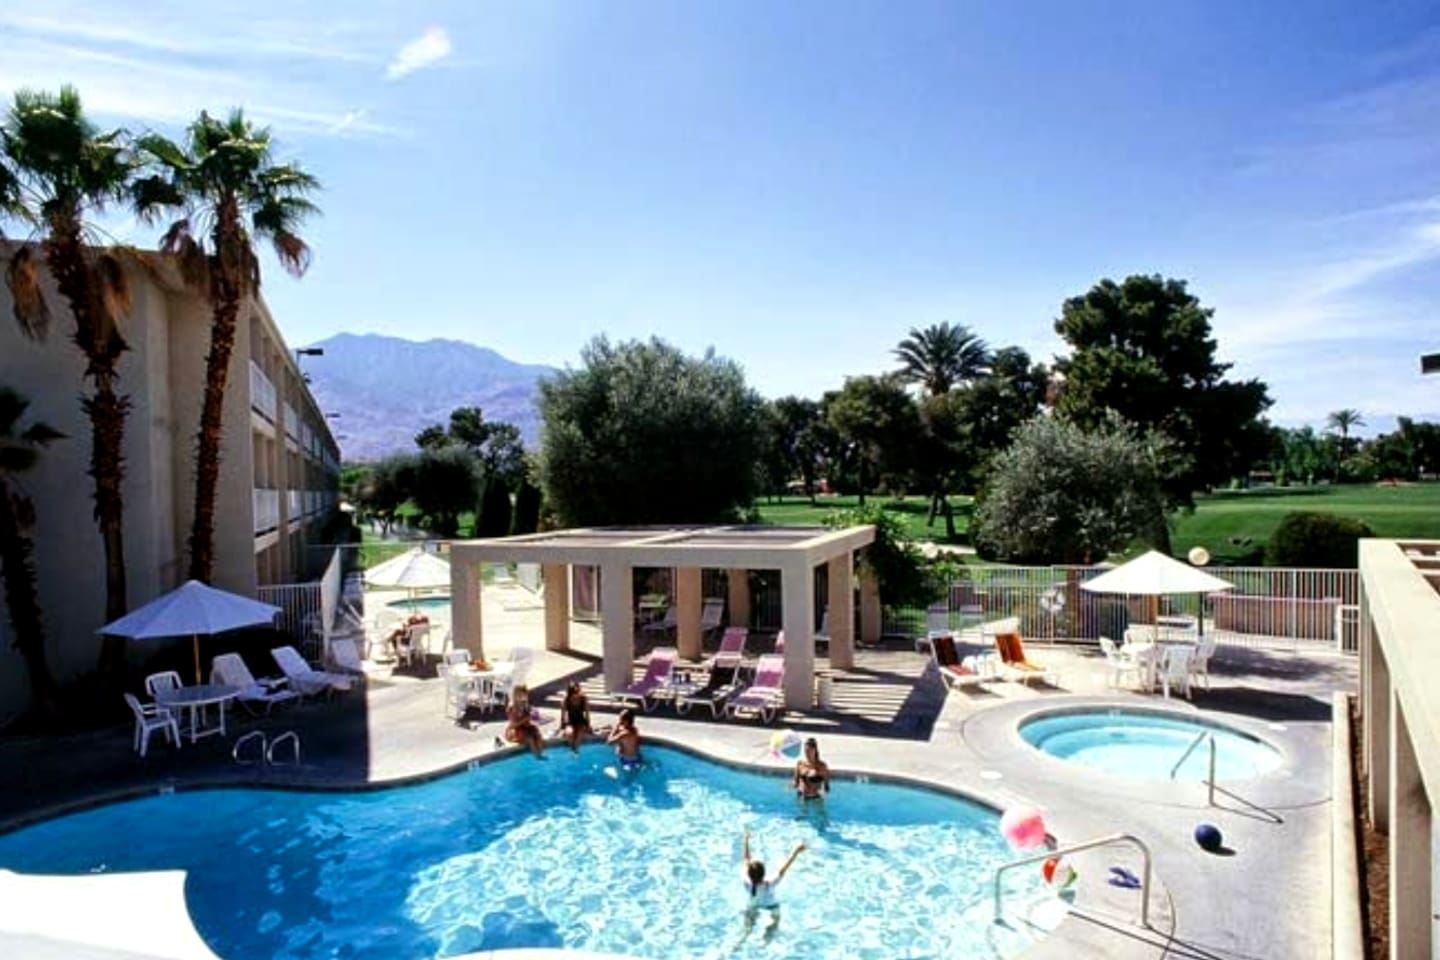 Enjoy the refreshing swimming pool and soothing spa against a magnificent mountain and golf course background.